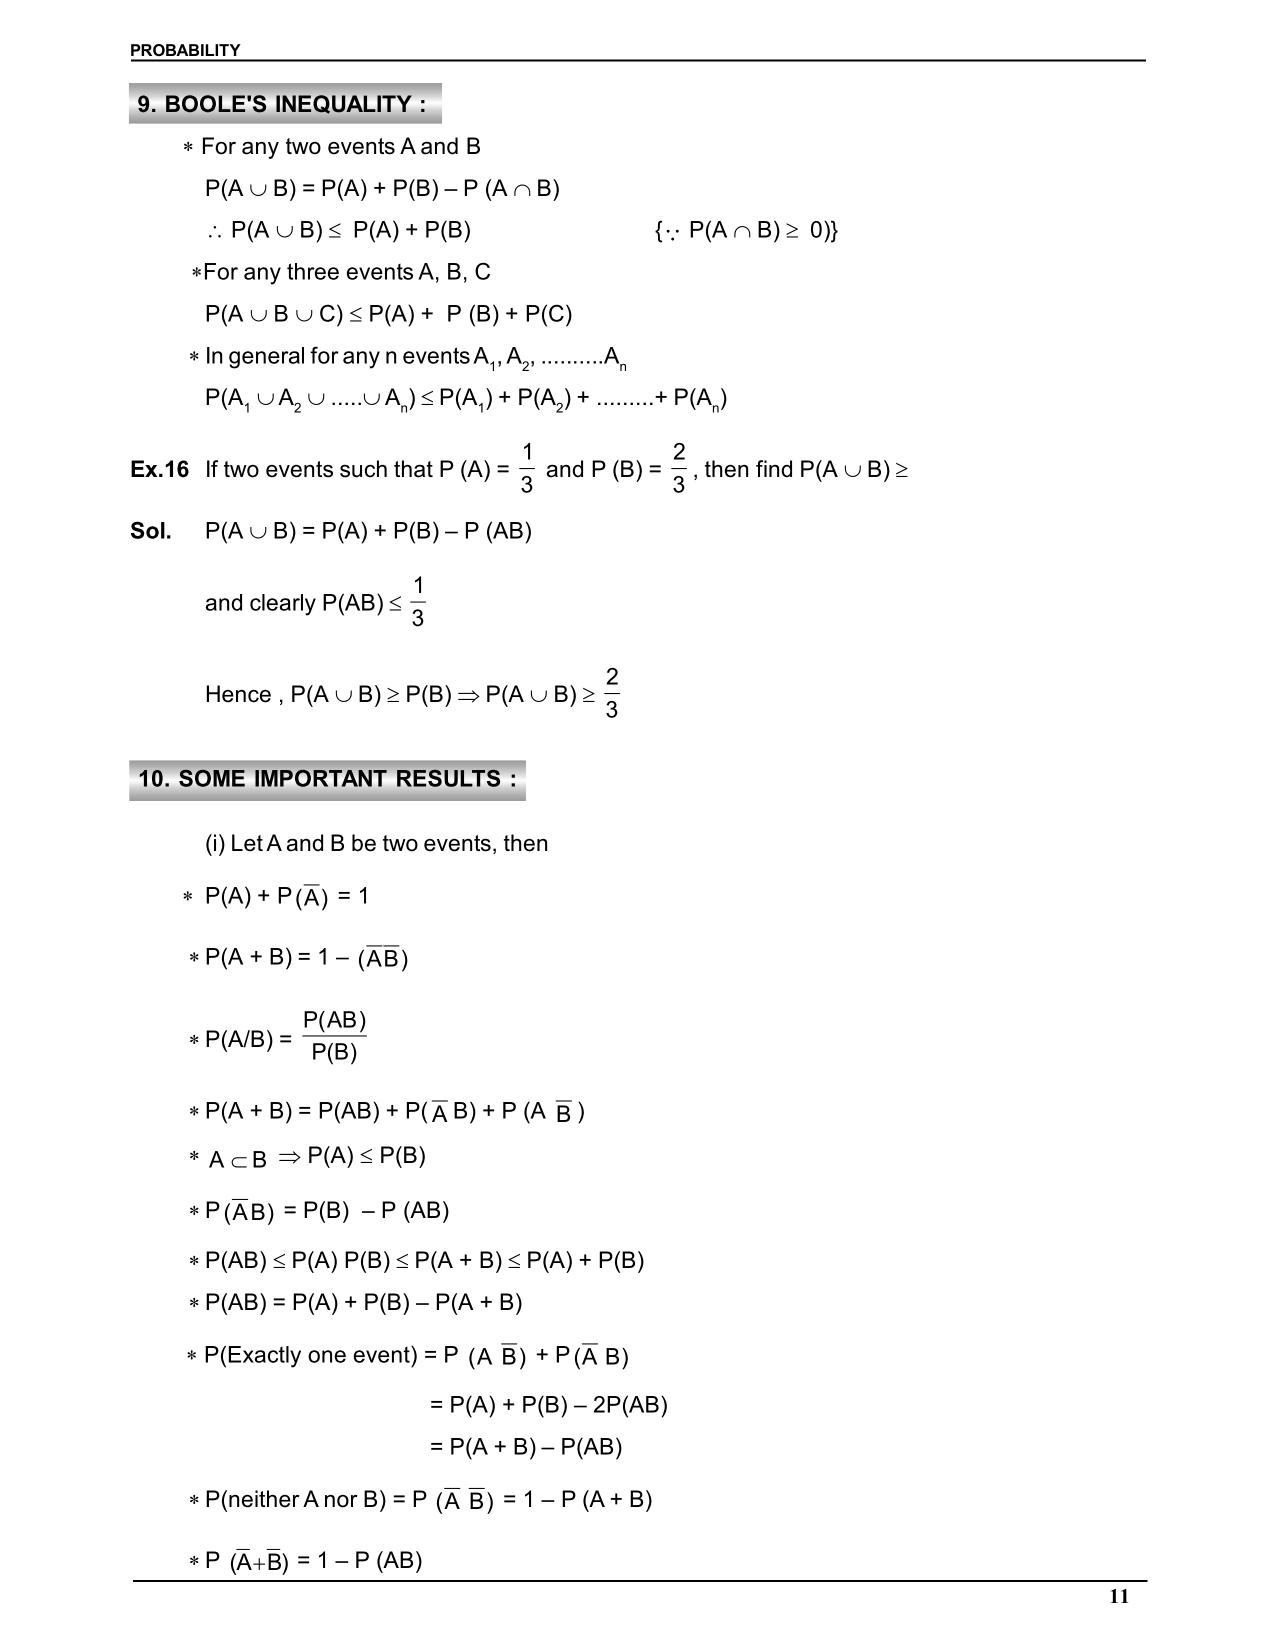 Probability Notes for Class 11 : Boole's Inequality